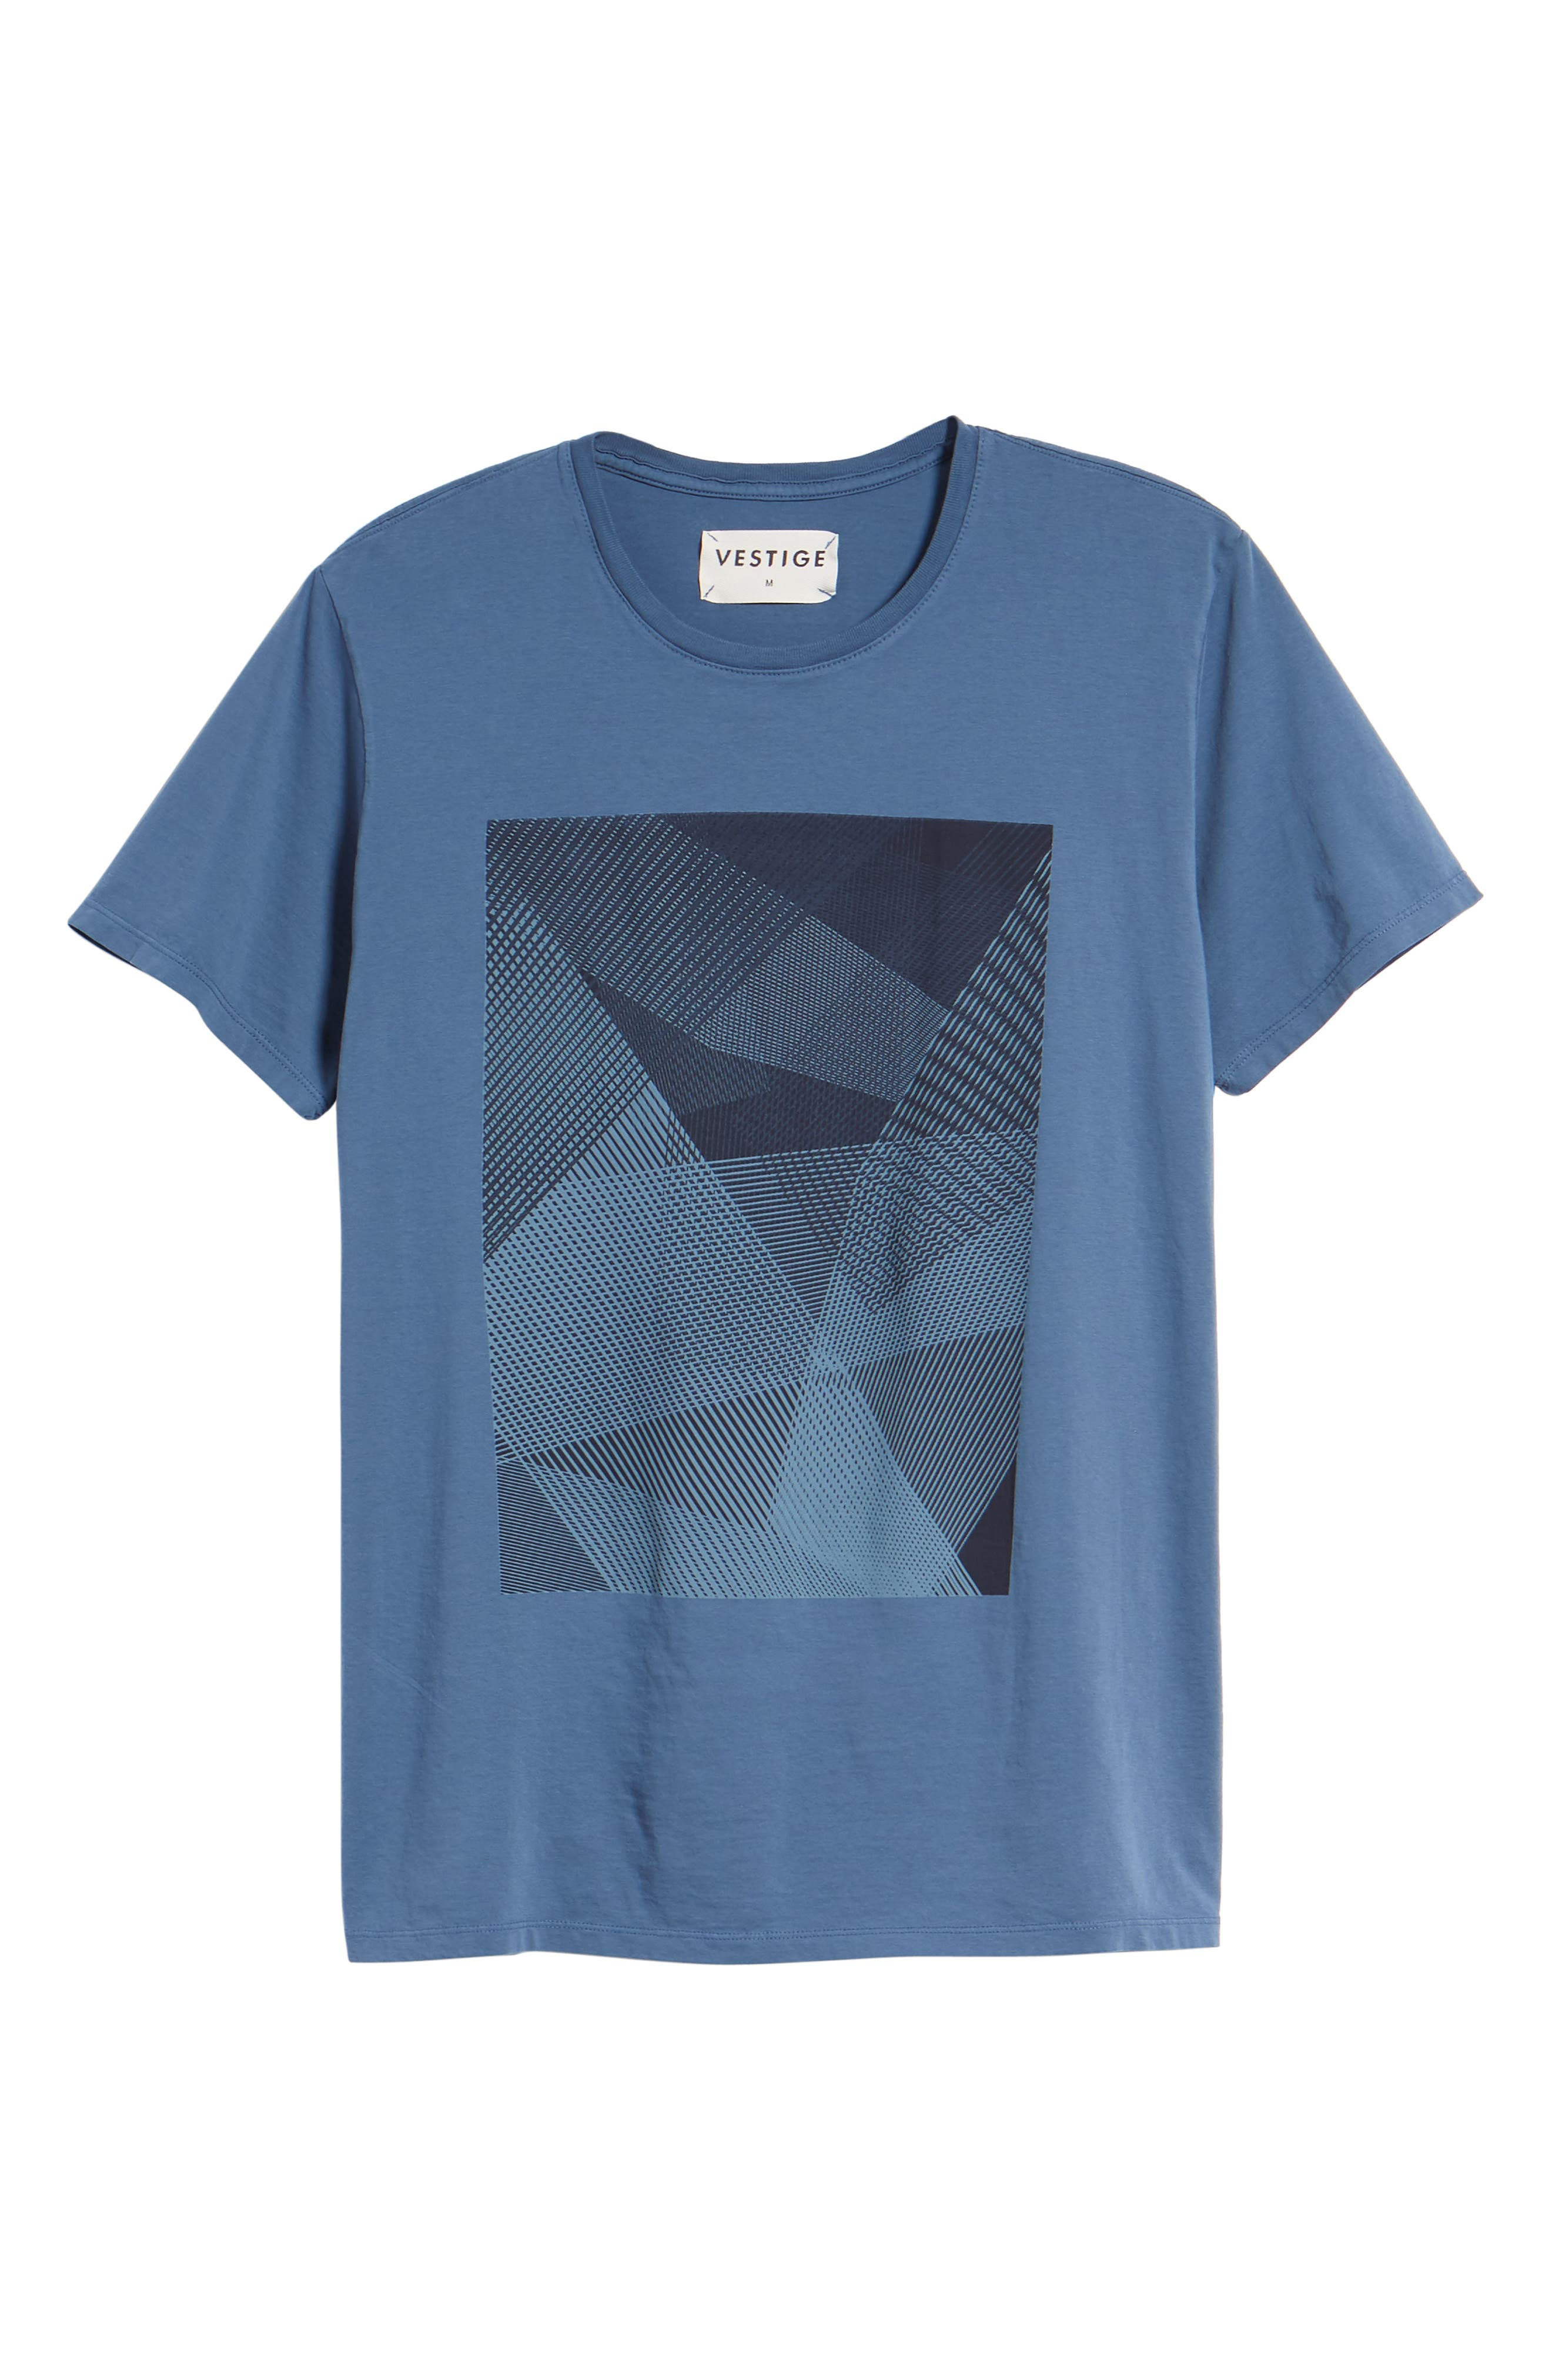 Line Matrix Graphic T-Shirt,                             Alternate thumbnail 5, color,                             Navy